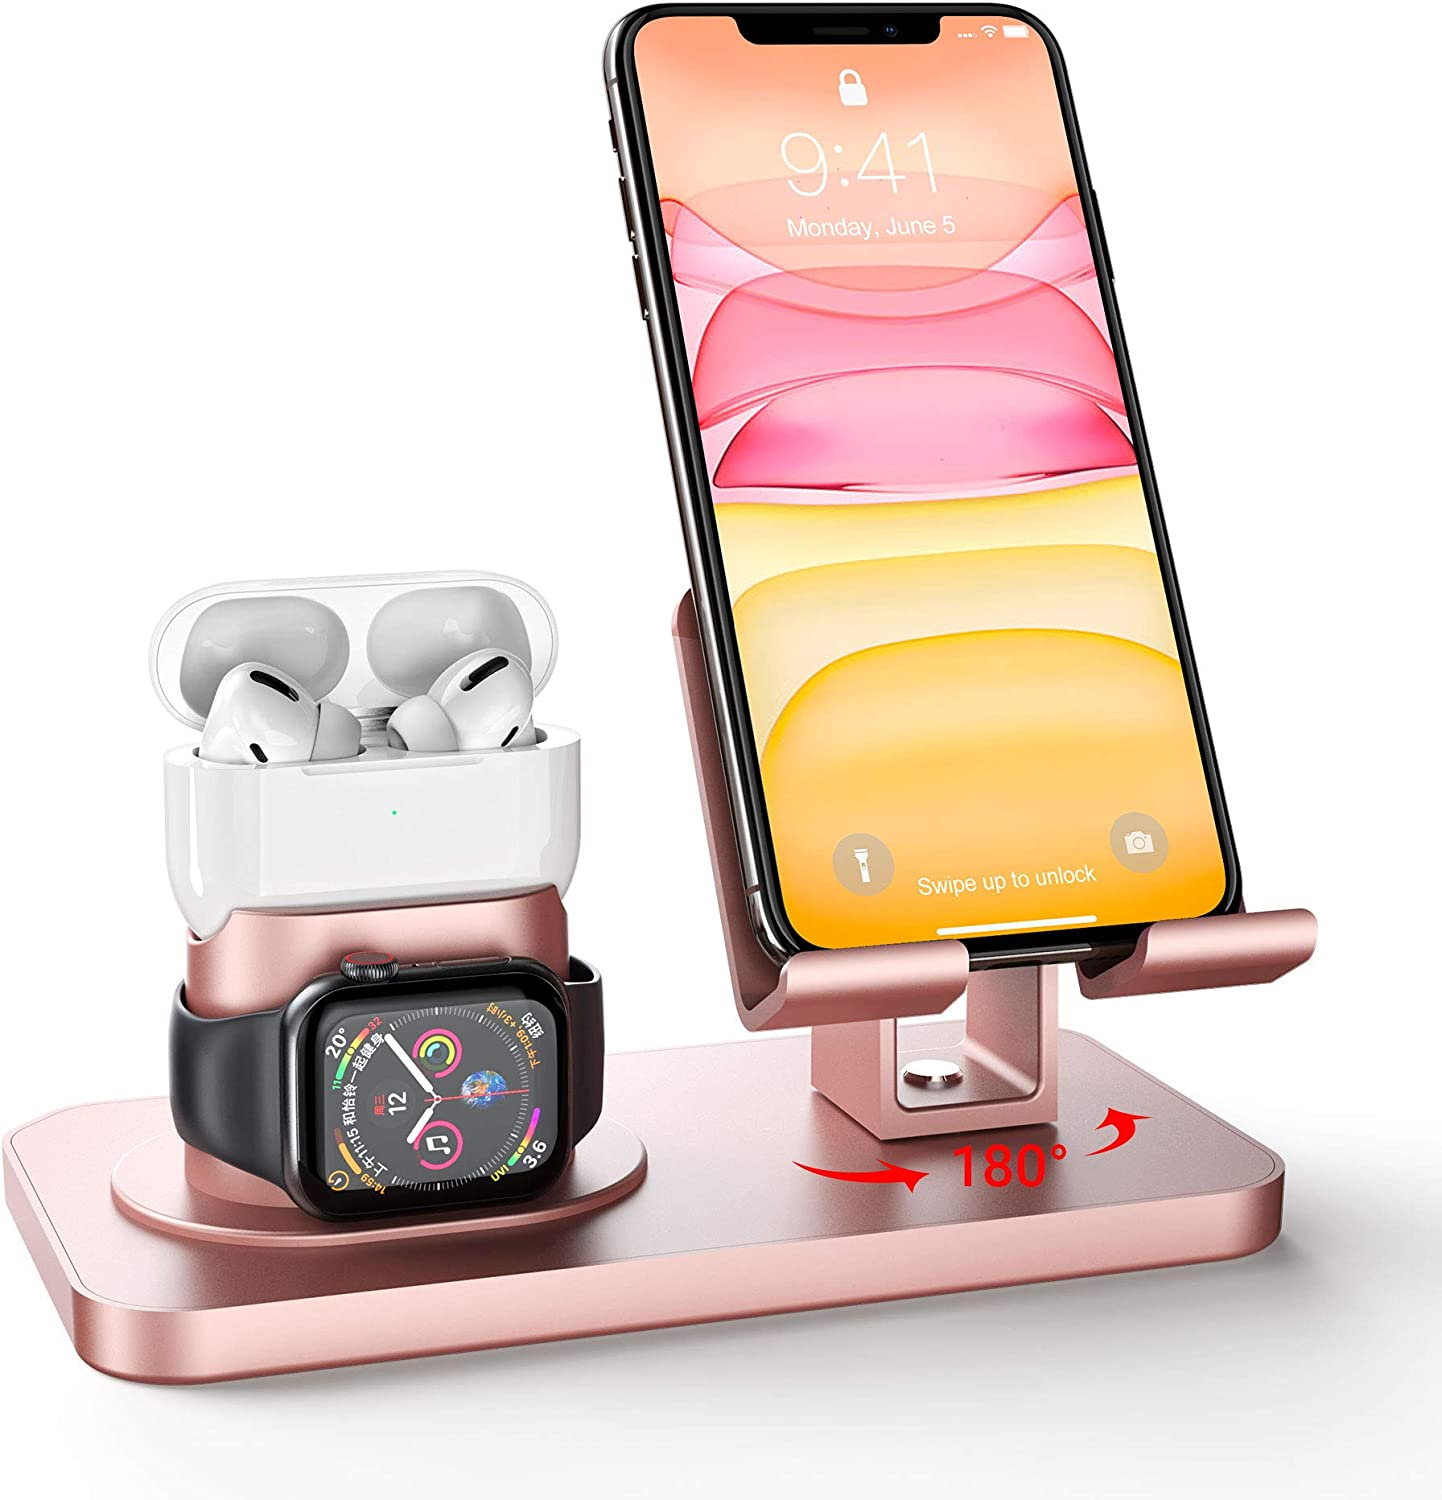 Imguardz 3-in-1 Charging Stand, Universal Charging Dock Station for Airpods Pro 2/1, iWatch Series 5/4/3/2/1 and iPhone 11/XR/X/Xs/Max/8/8 Plus/7/7 Plus/6s/6s Plus/5/SE, iPad Tablet, Rose Gold